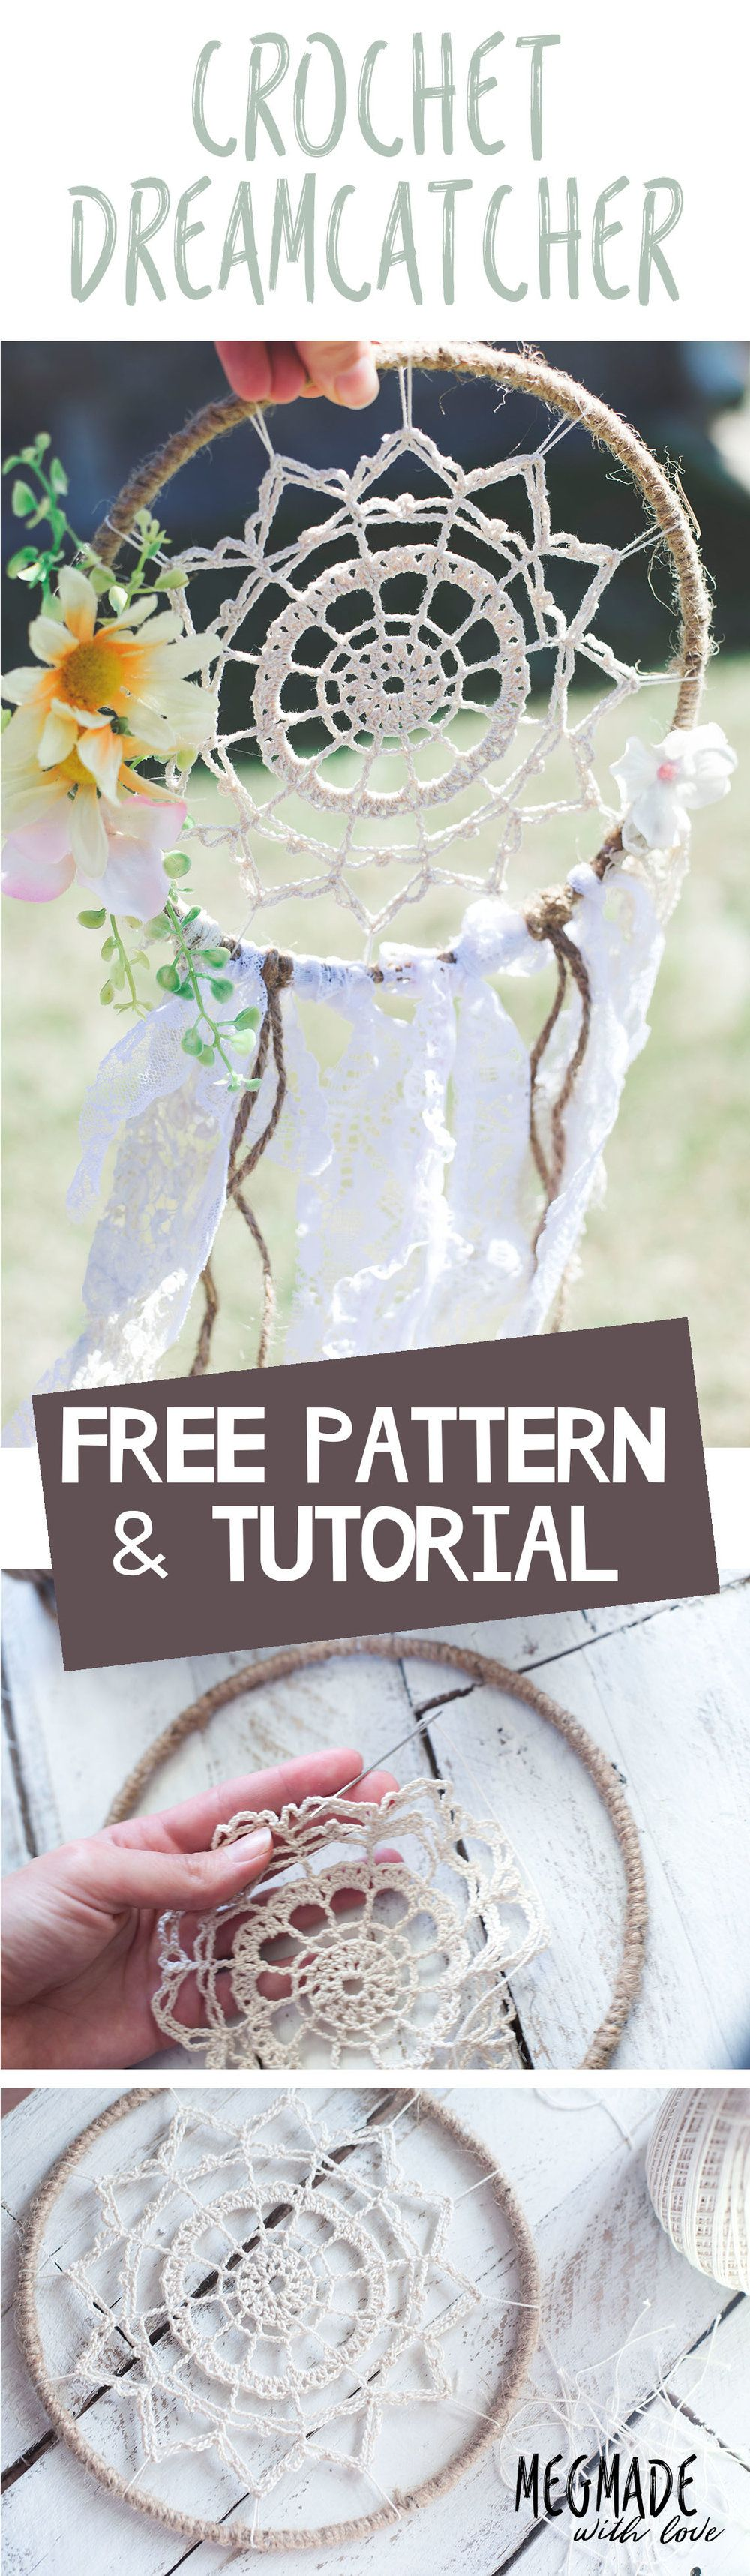 Crochet Dreamy Dreamcatcher Pattern Häkelinspirationen Pinterest